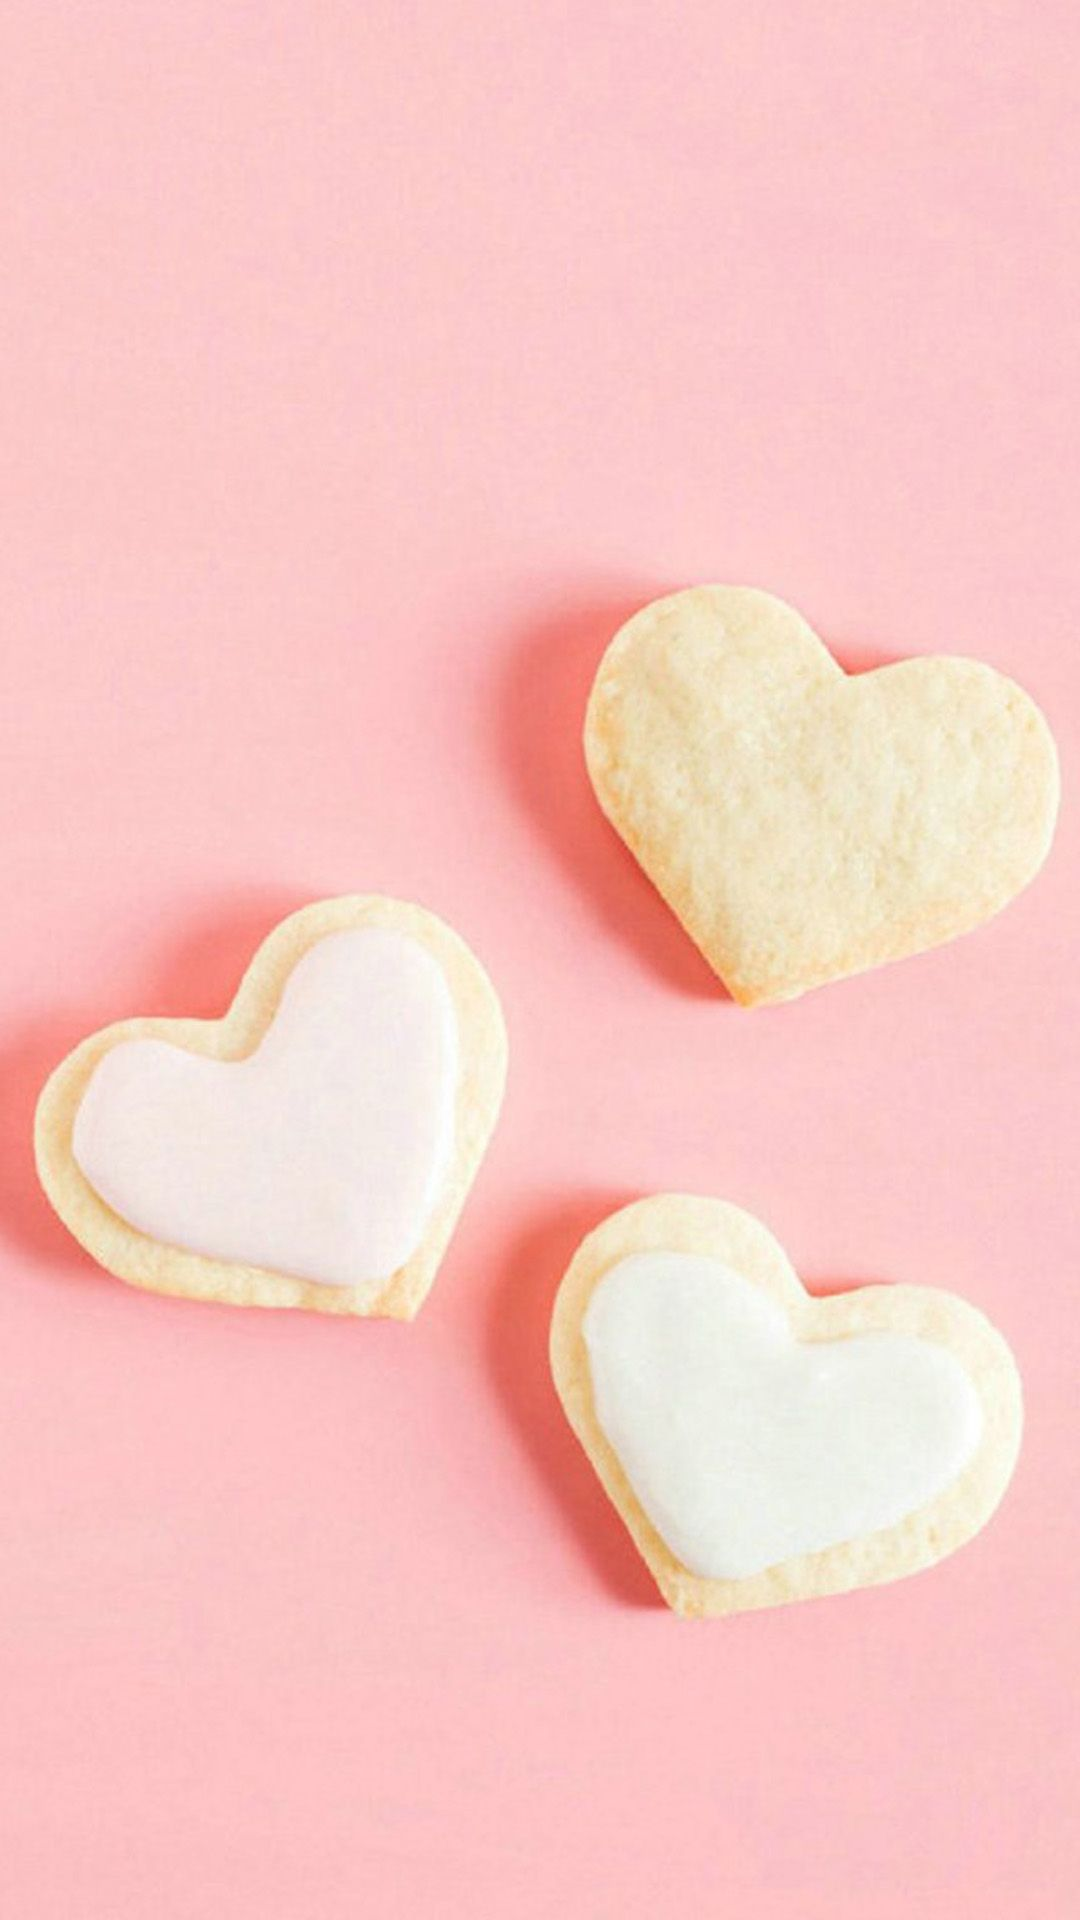 romance sweet love heart shape dessert iphone 6 plus wallpaper